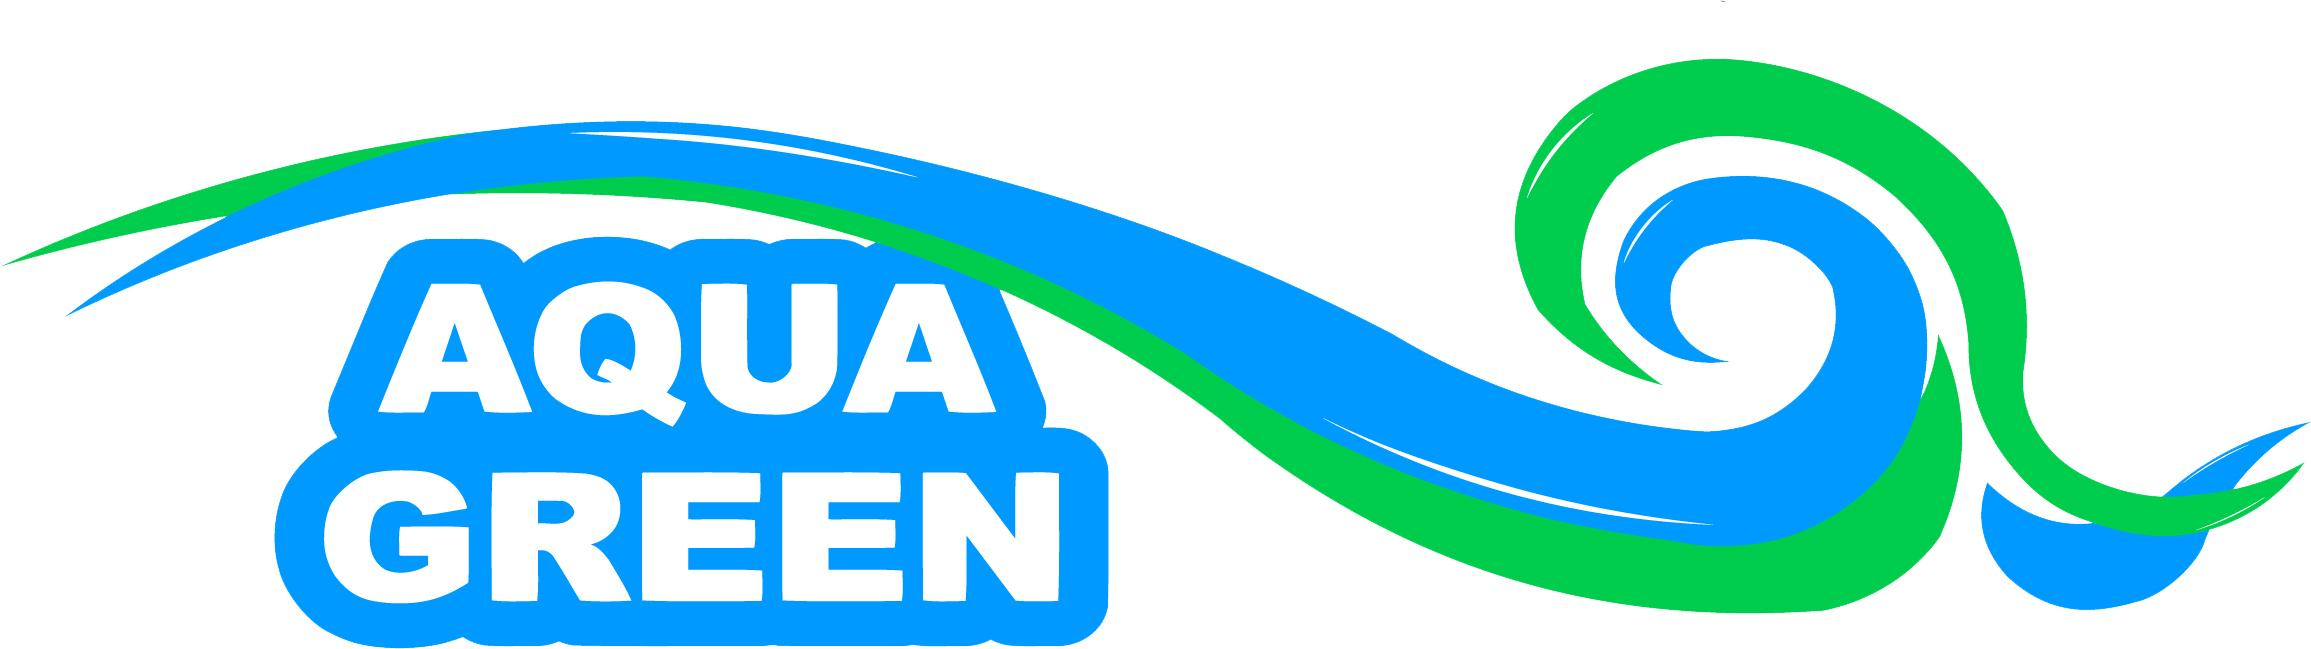 aquagreen logo_16